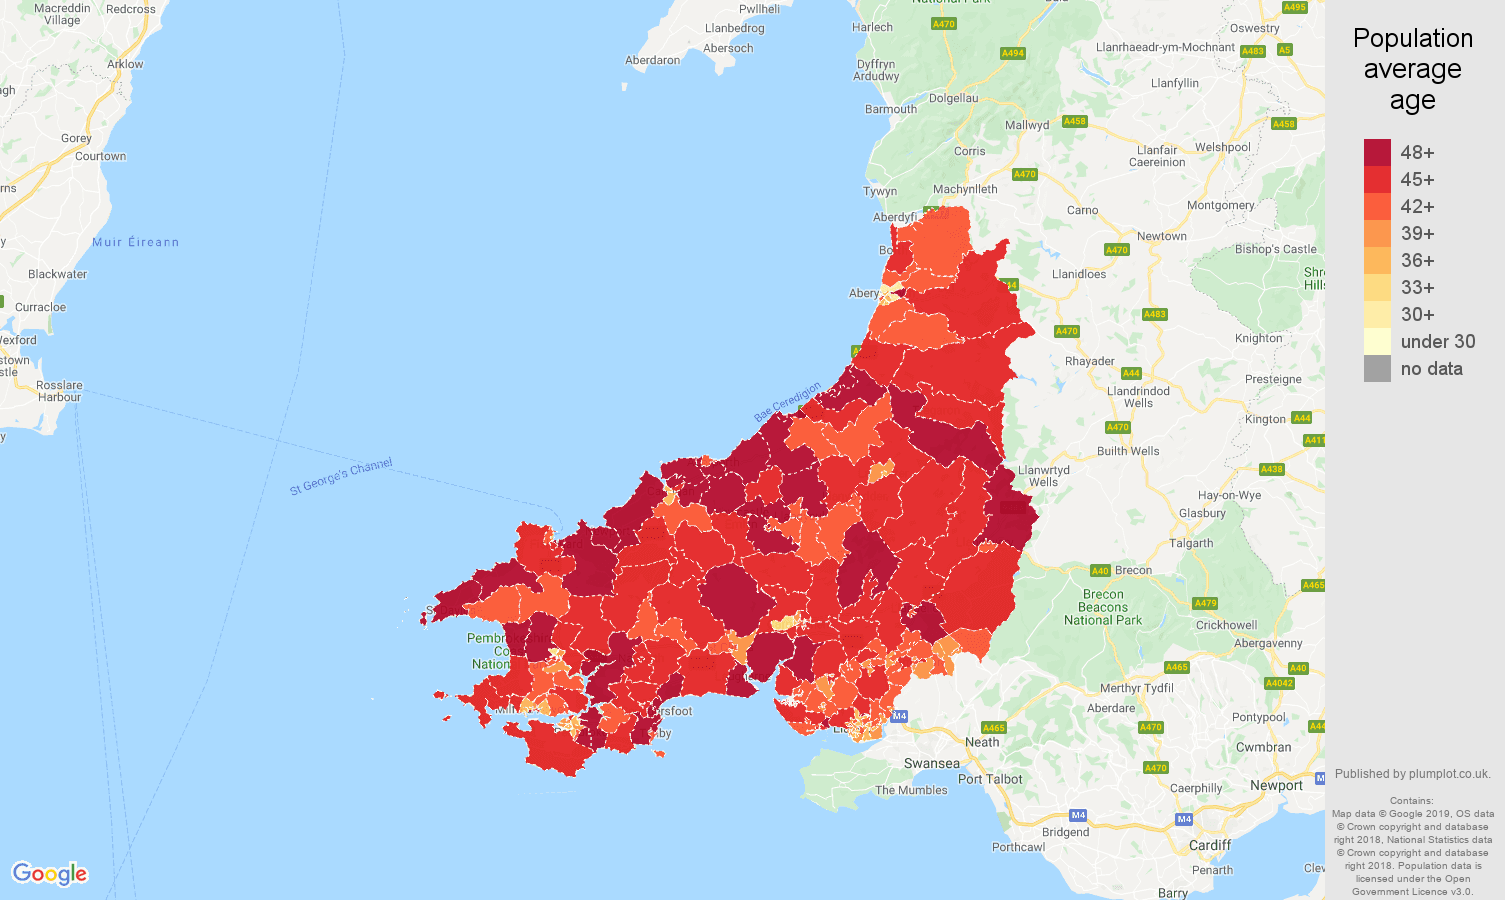 Dyfed population average age map